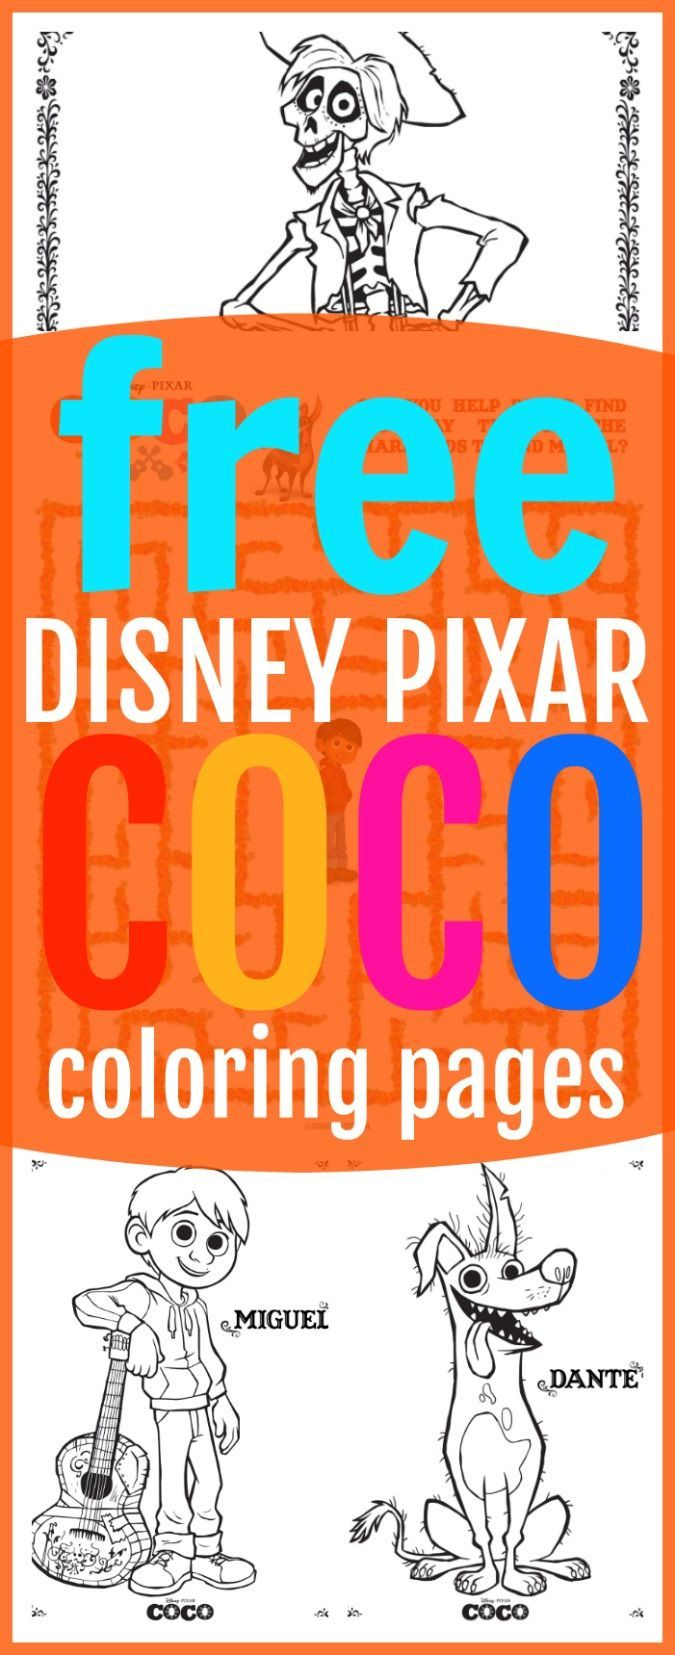 Free coco coloring sheets kids activities pixarcoco kid